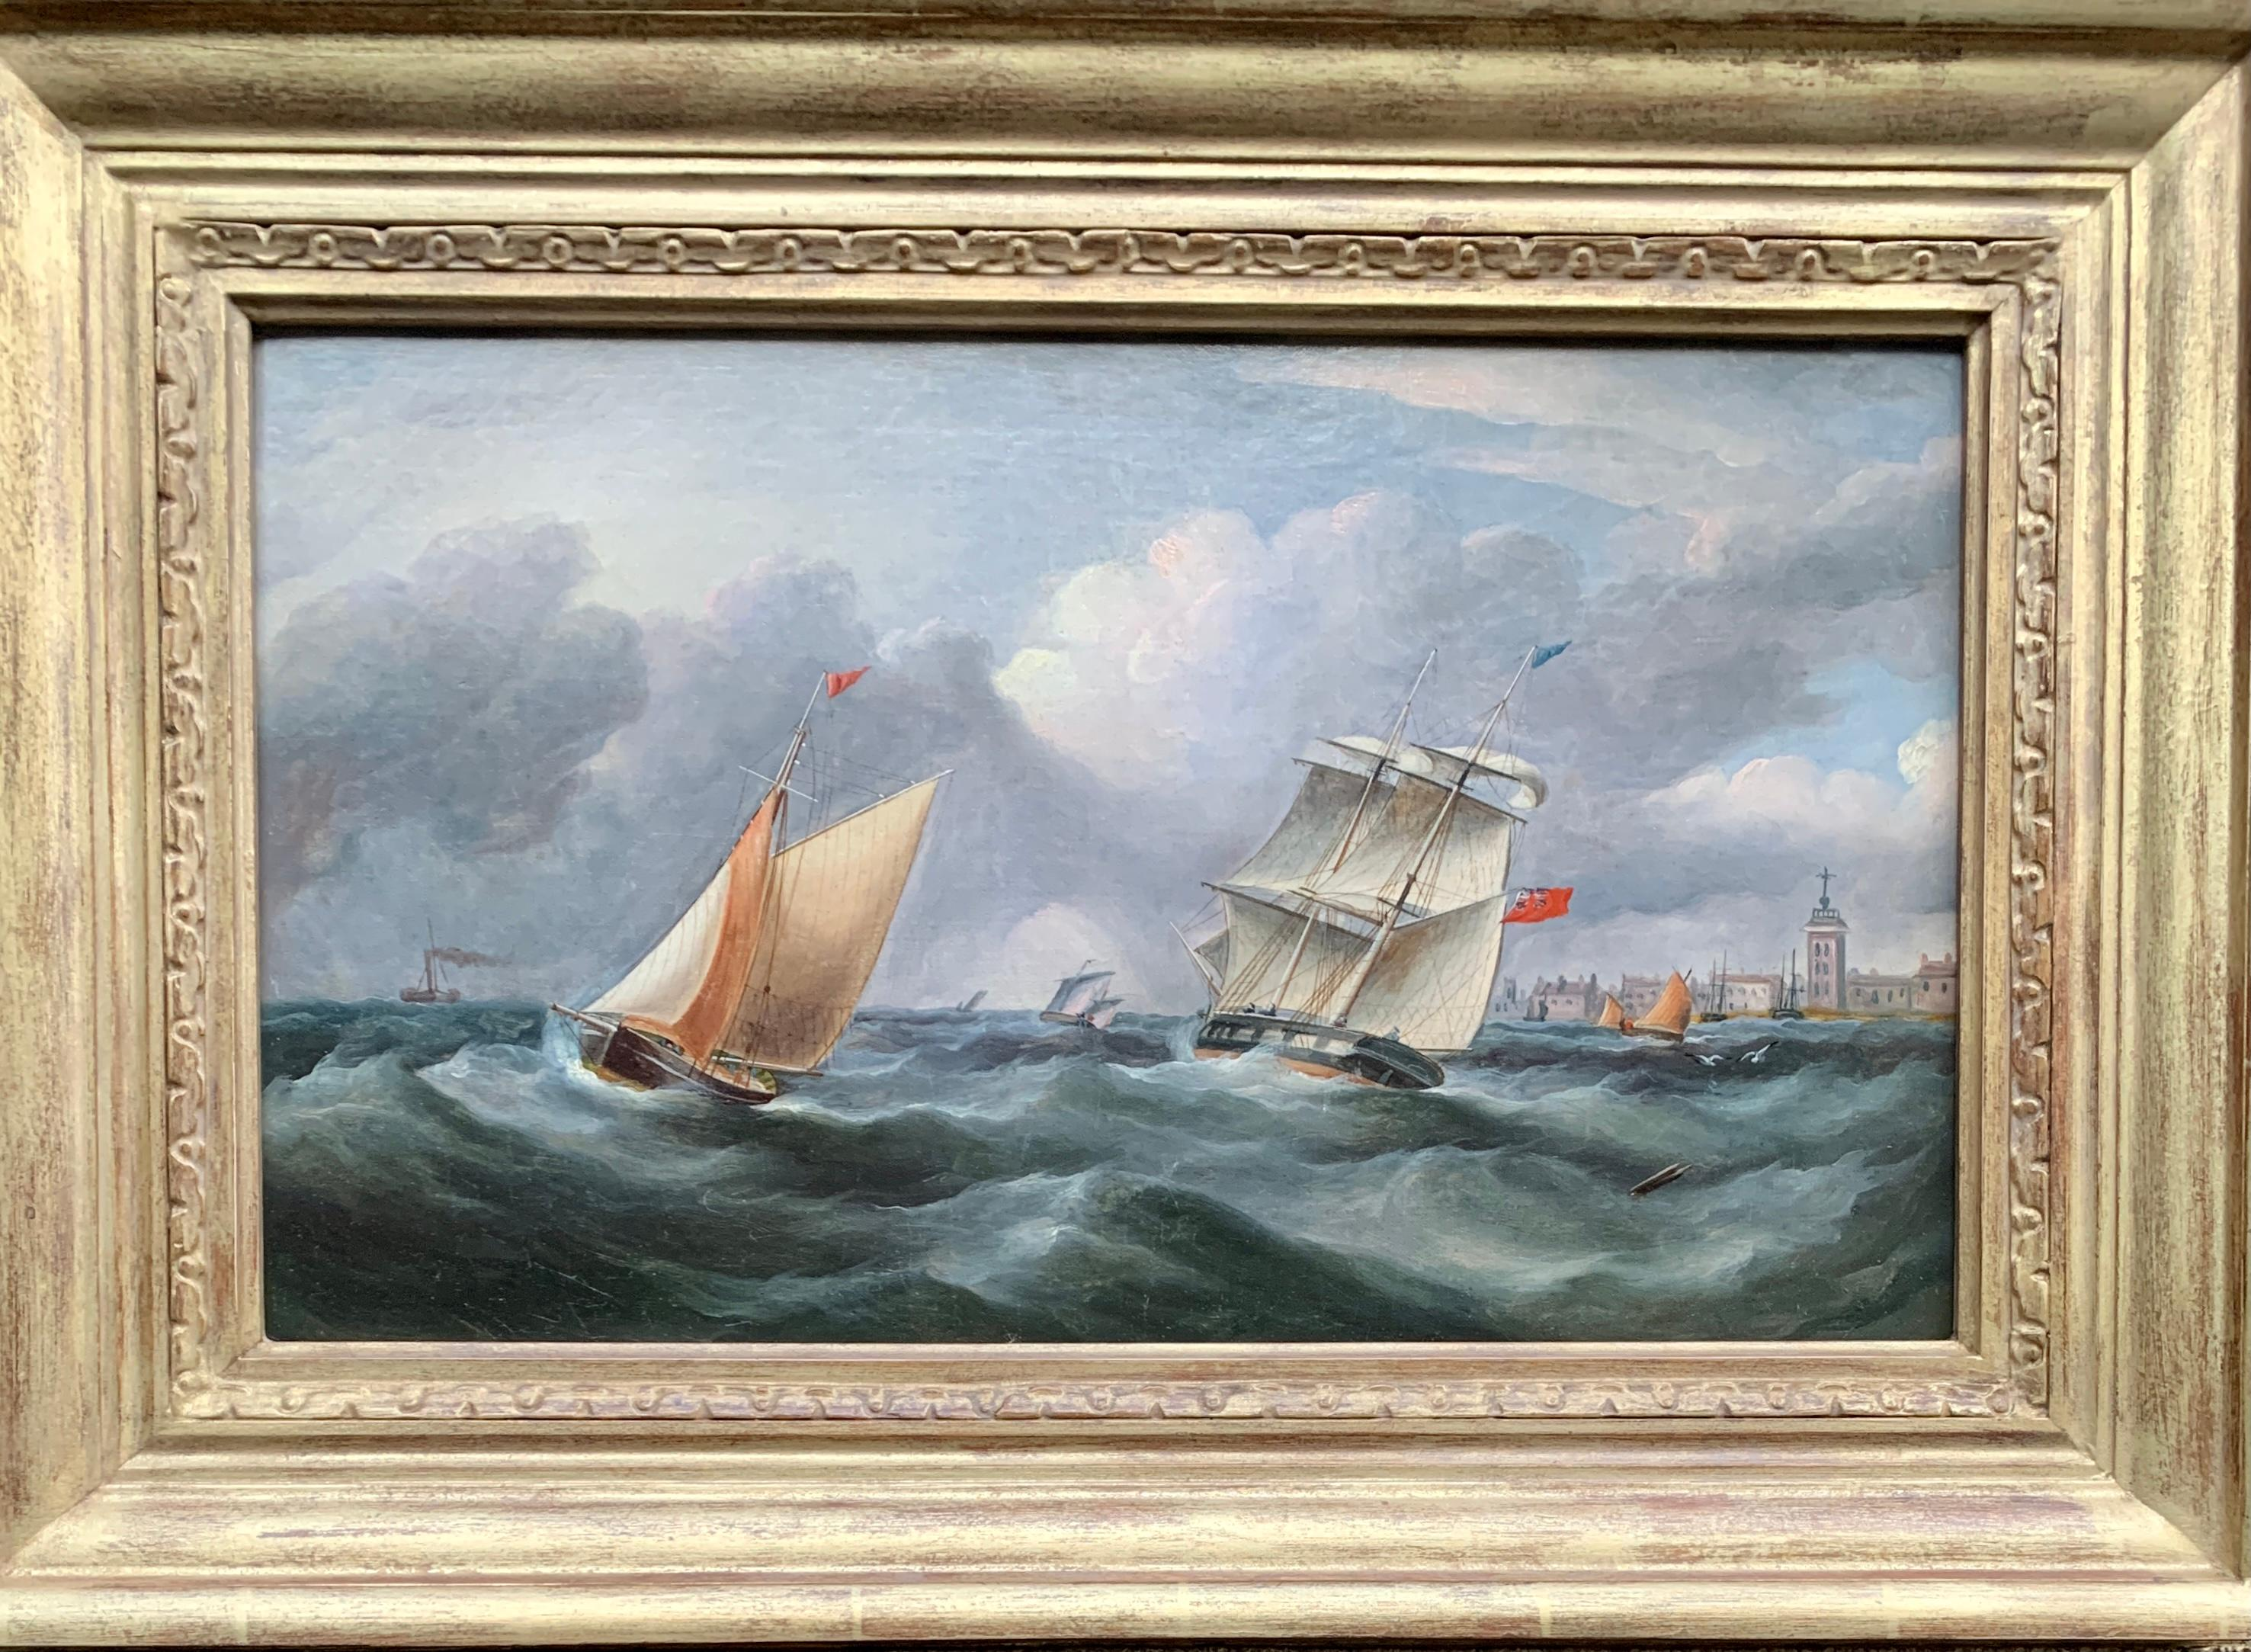 Antique 19th century English Yacht and Warship at sea off the English coast